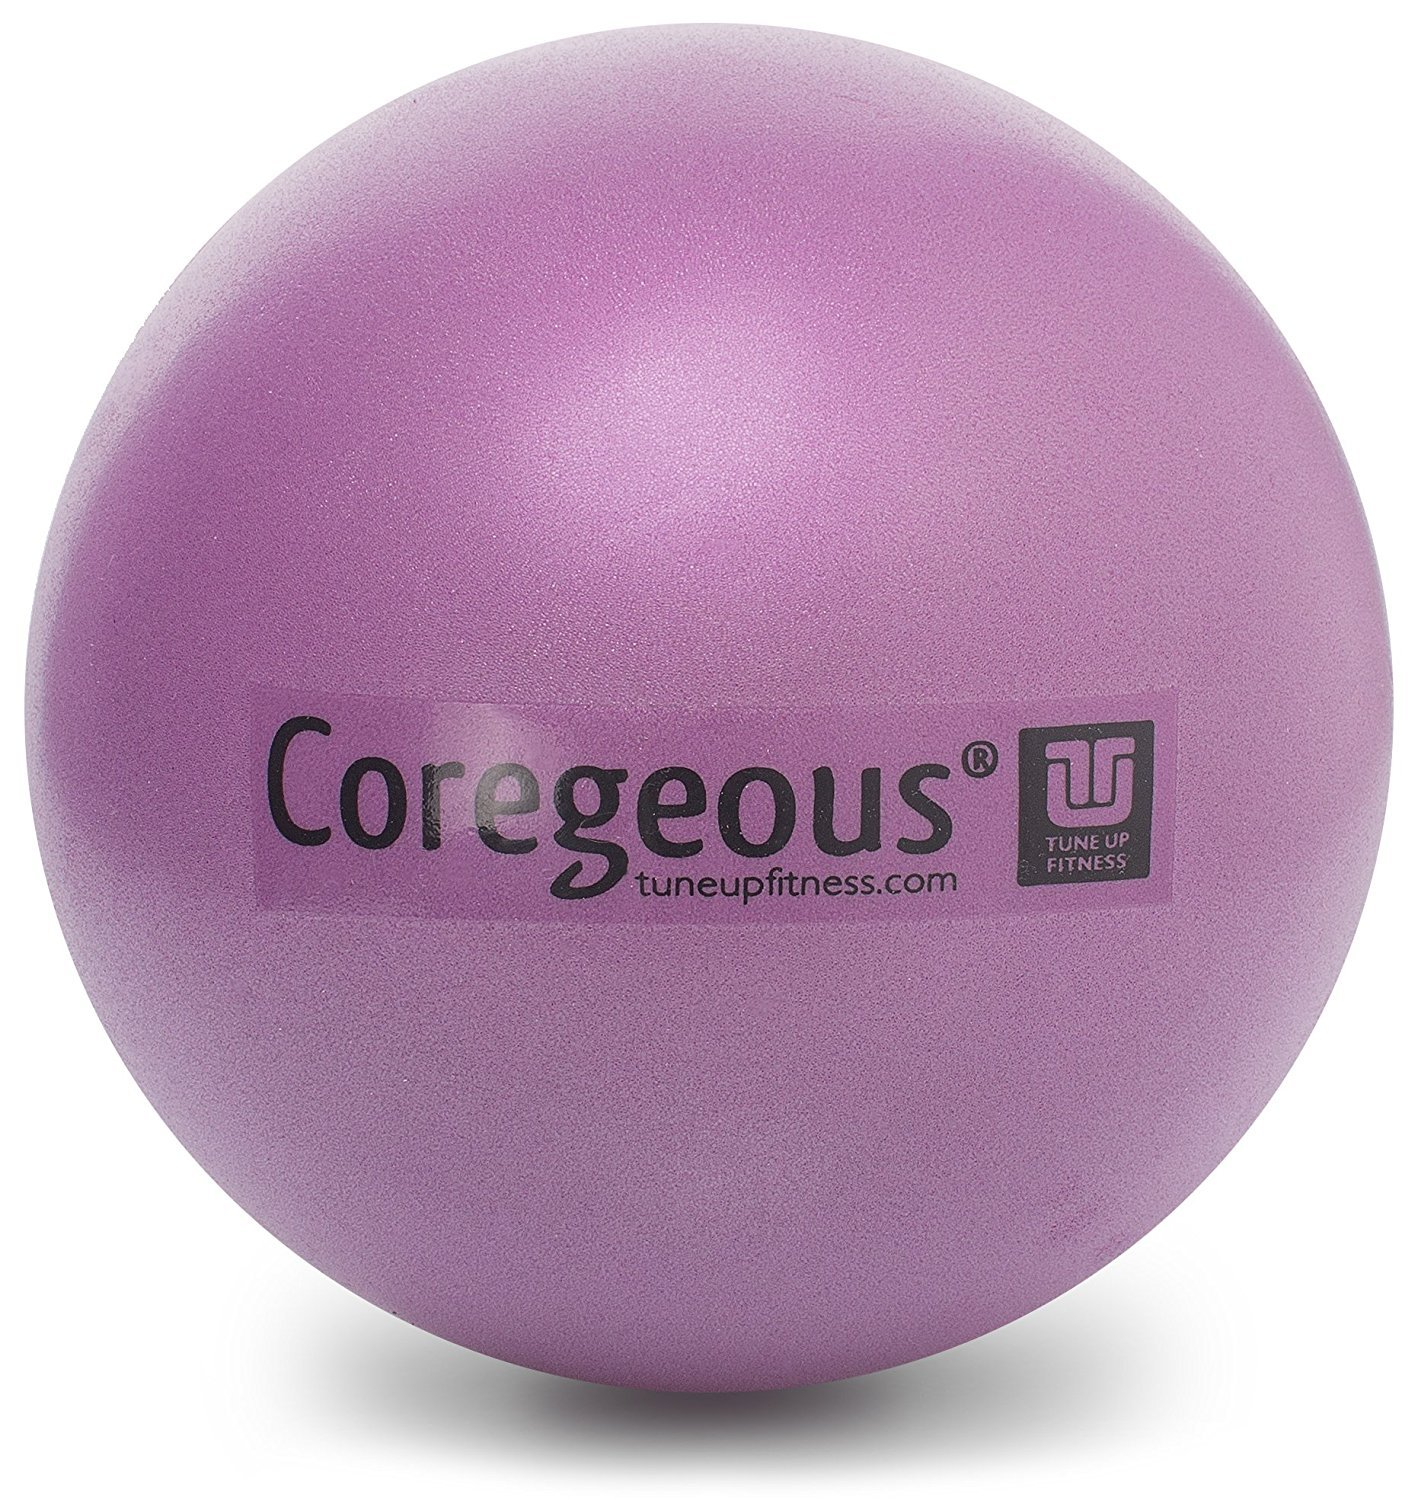 Tune Up Fitness Coregeous Ball Newly Updated Packaging Jill Miller Use Ball to M